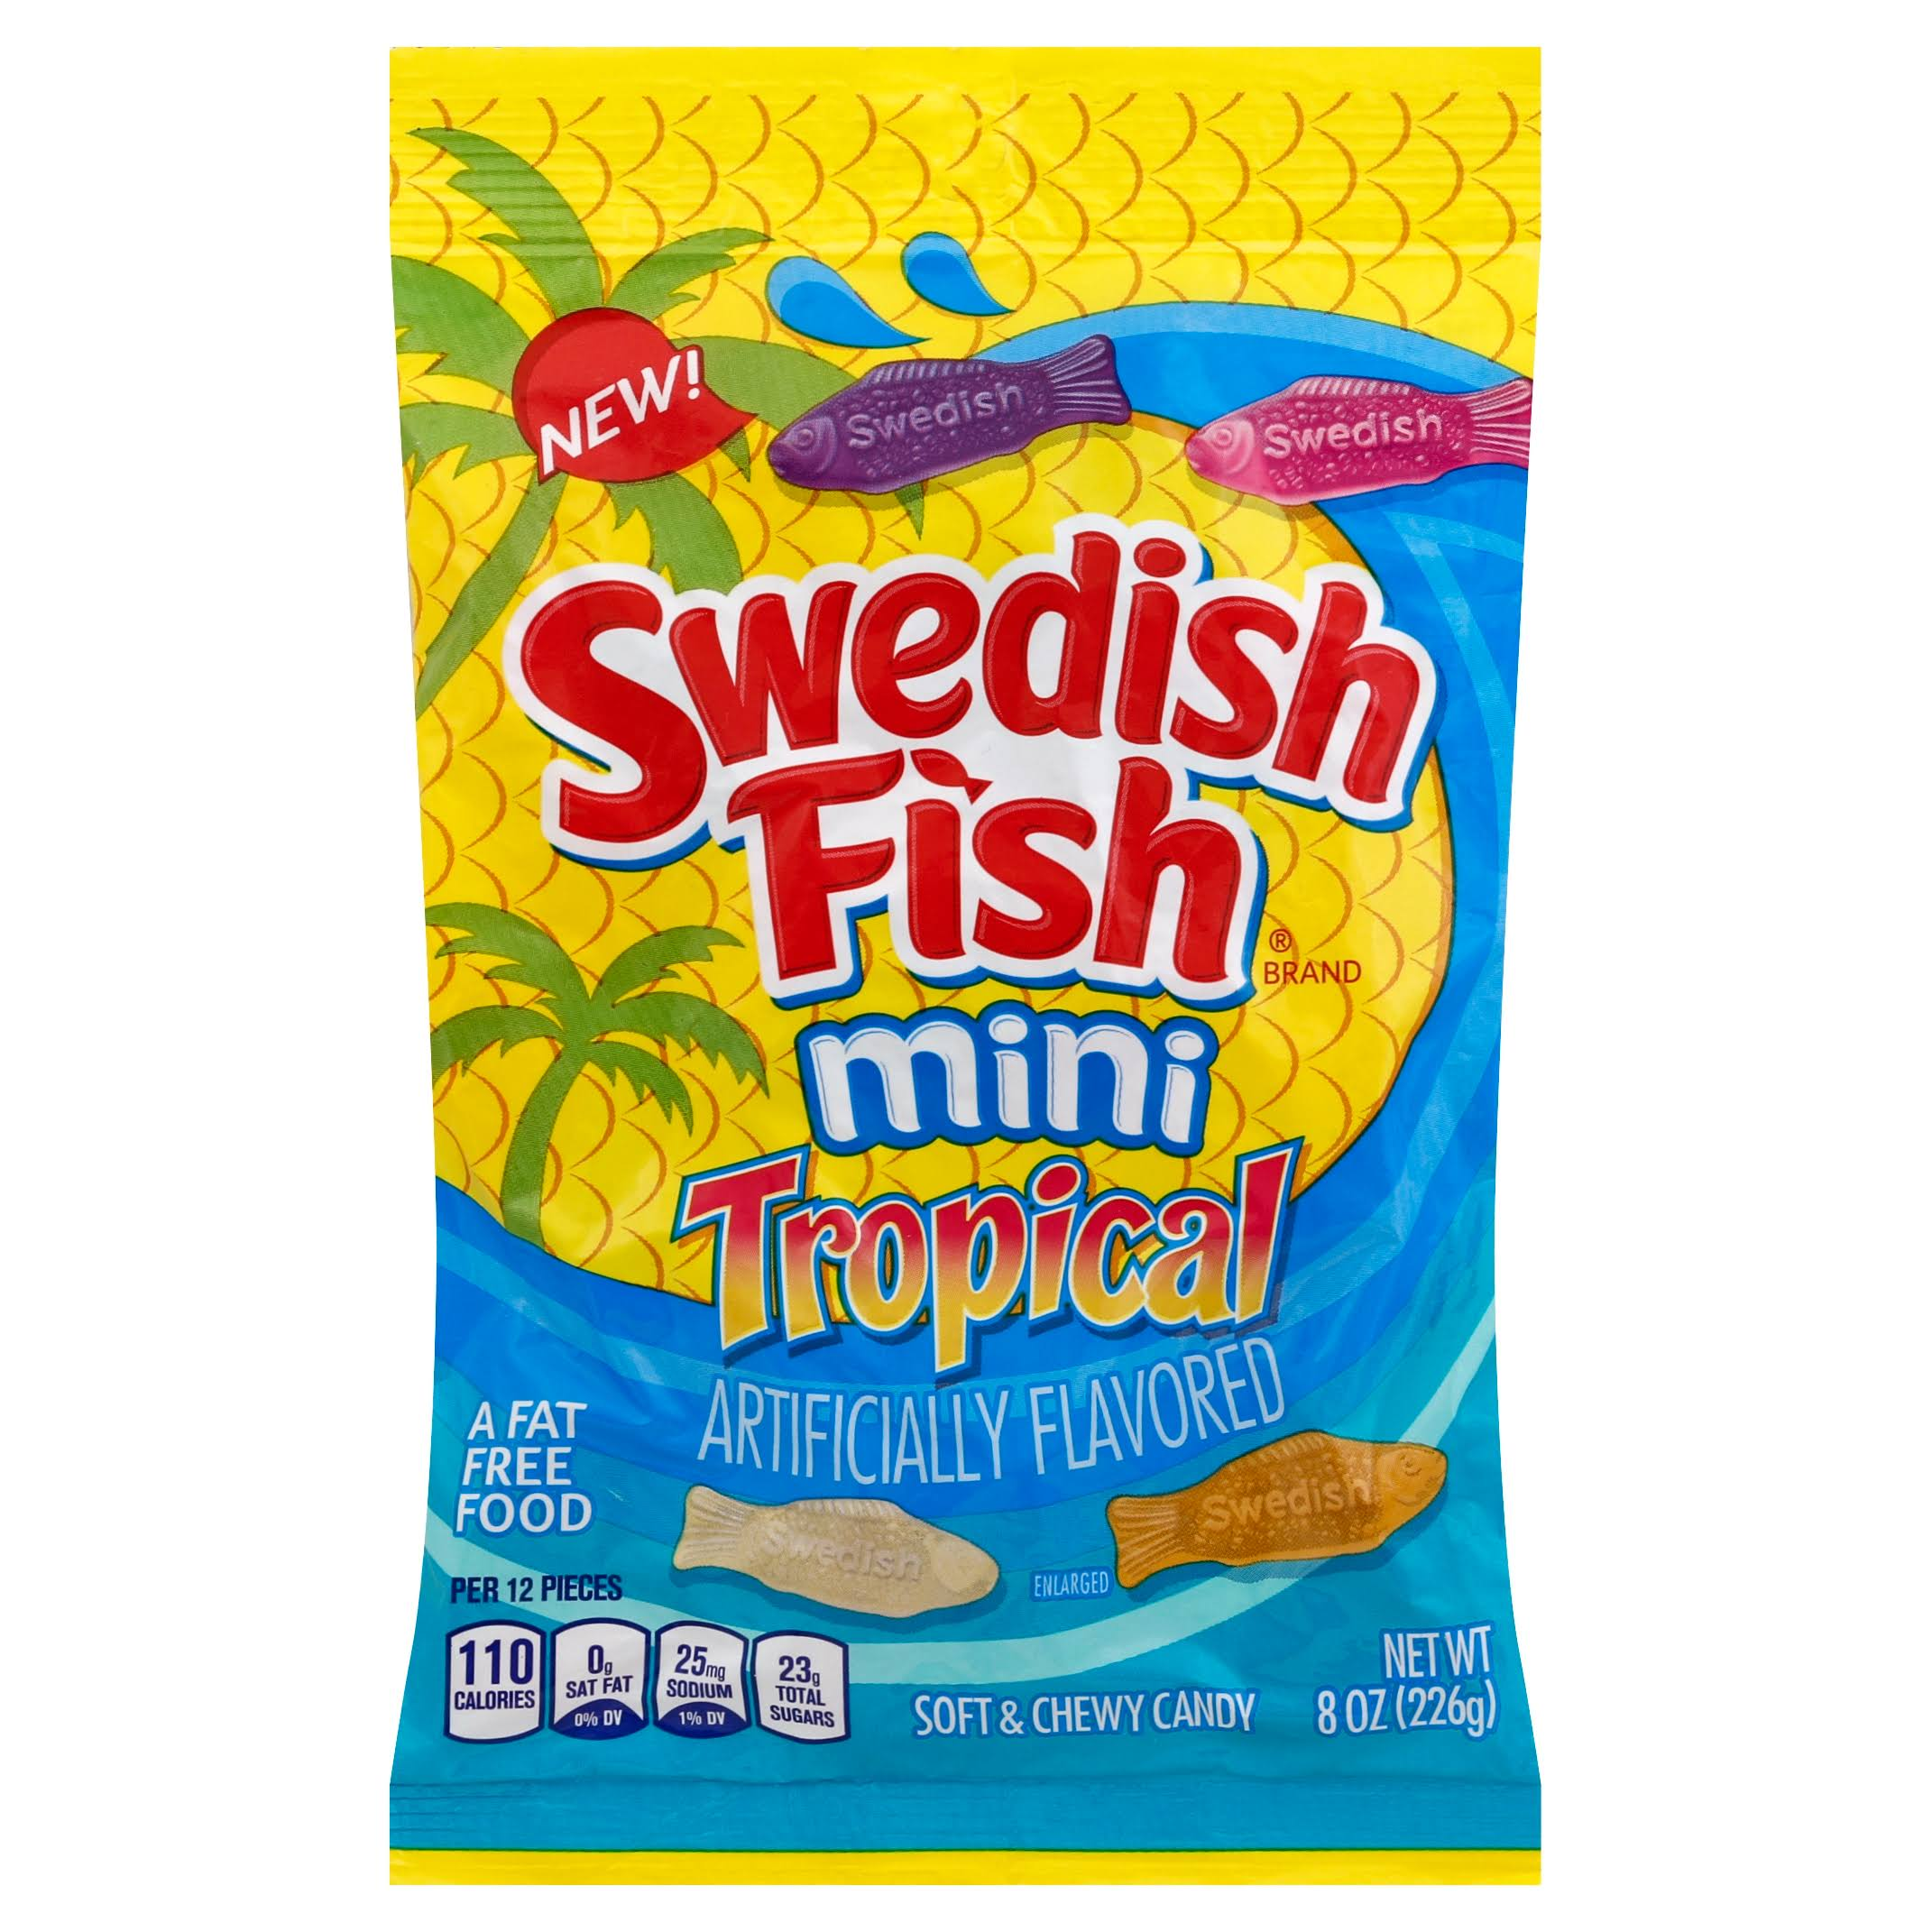 Swedish Fish Soft & Chewy Candy, Tropical, Mini - 8 oz